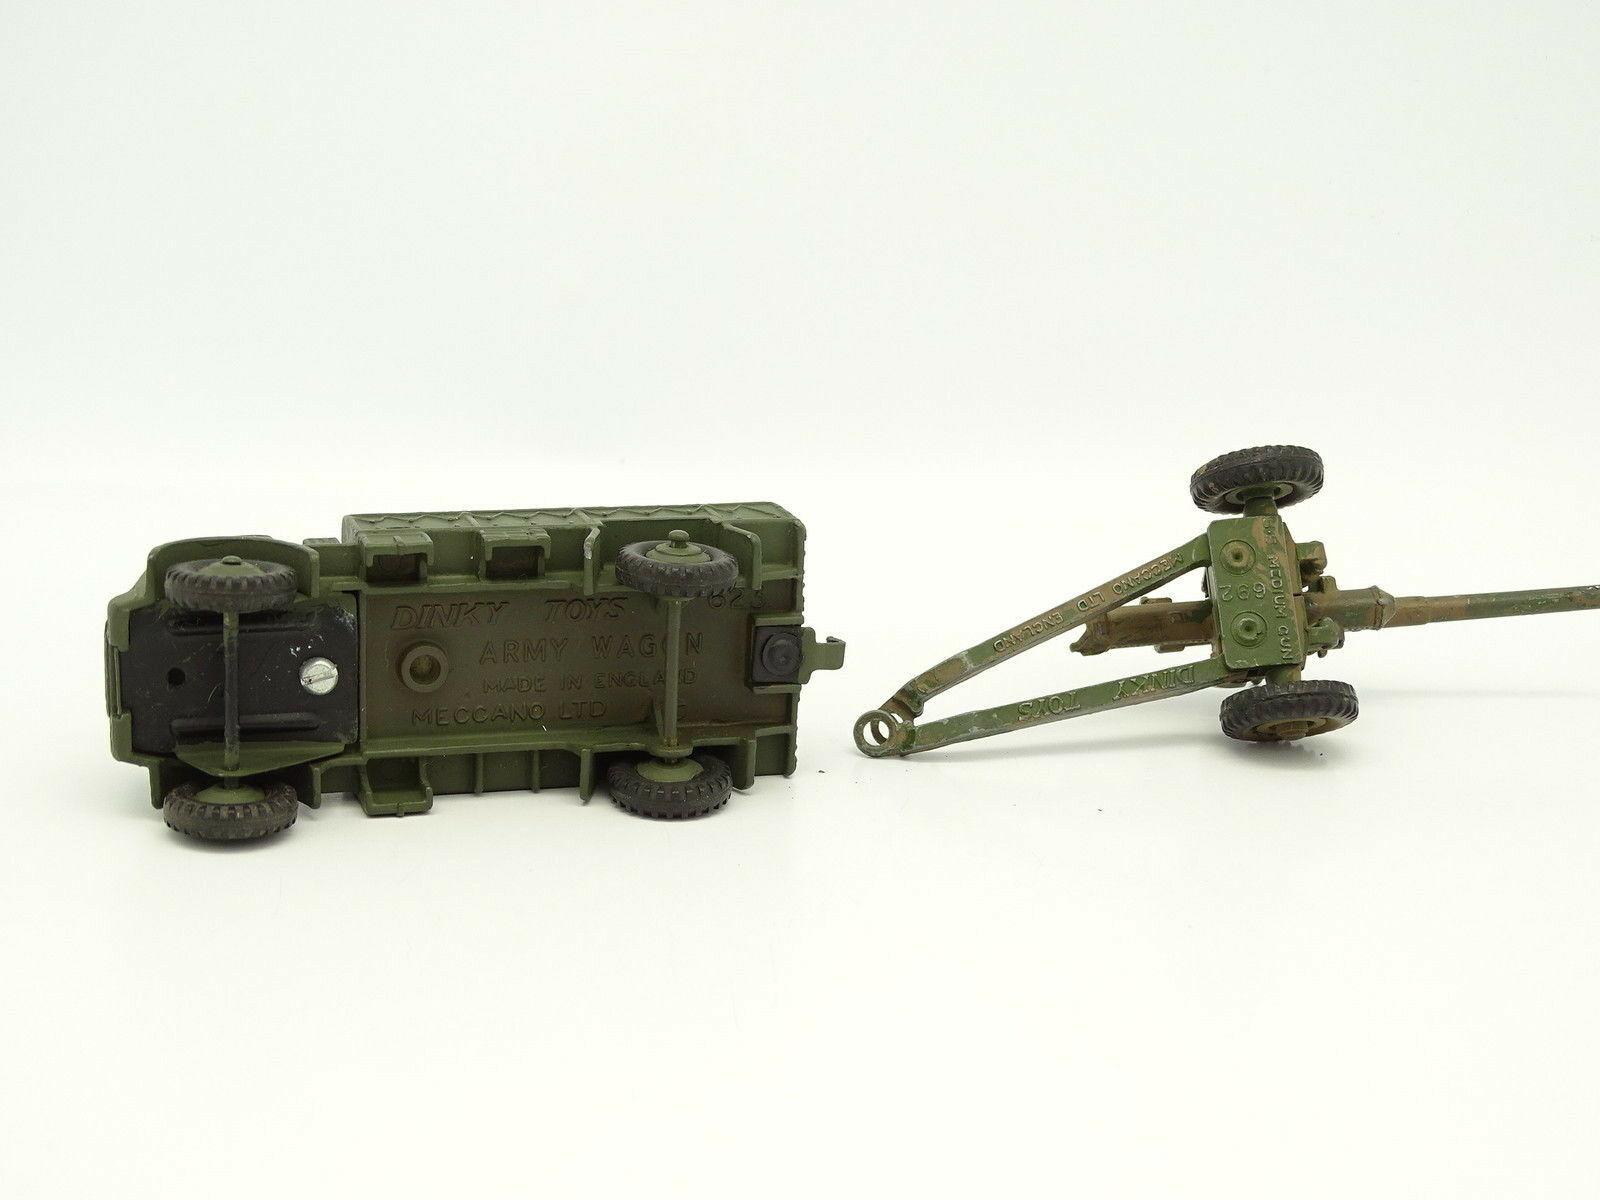 Dinky Toys GB Militaire Militaire Militaire SB 1 43 - Army Wagon with Trailer Medium Gun 692 12654f